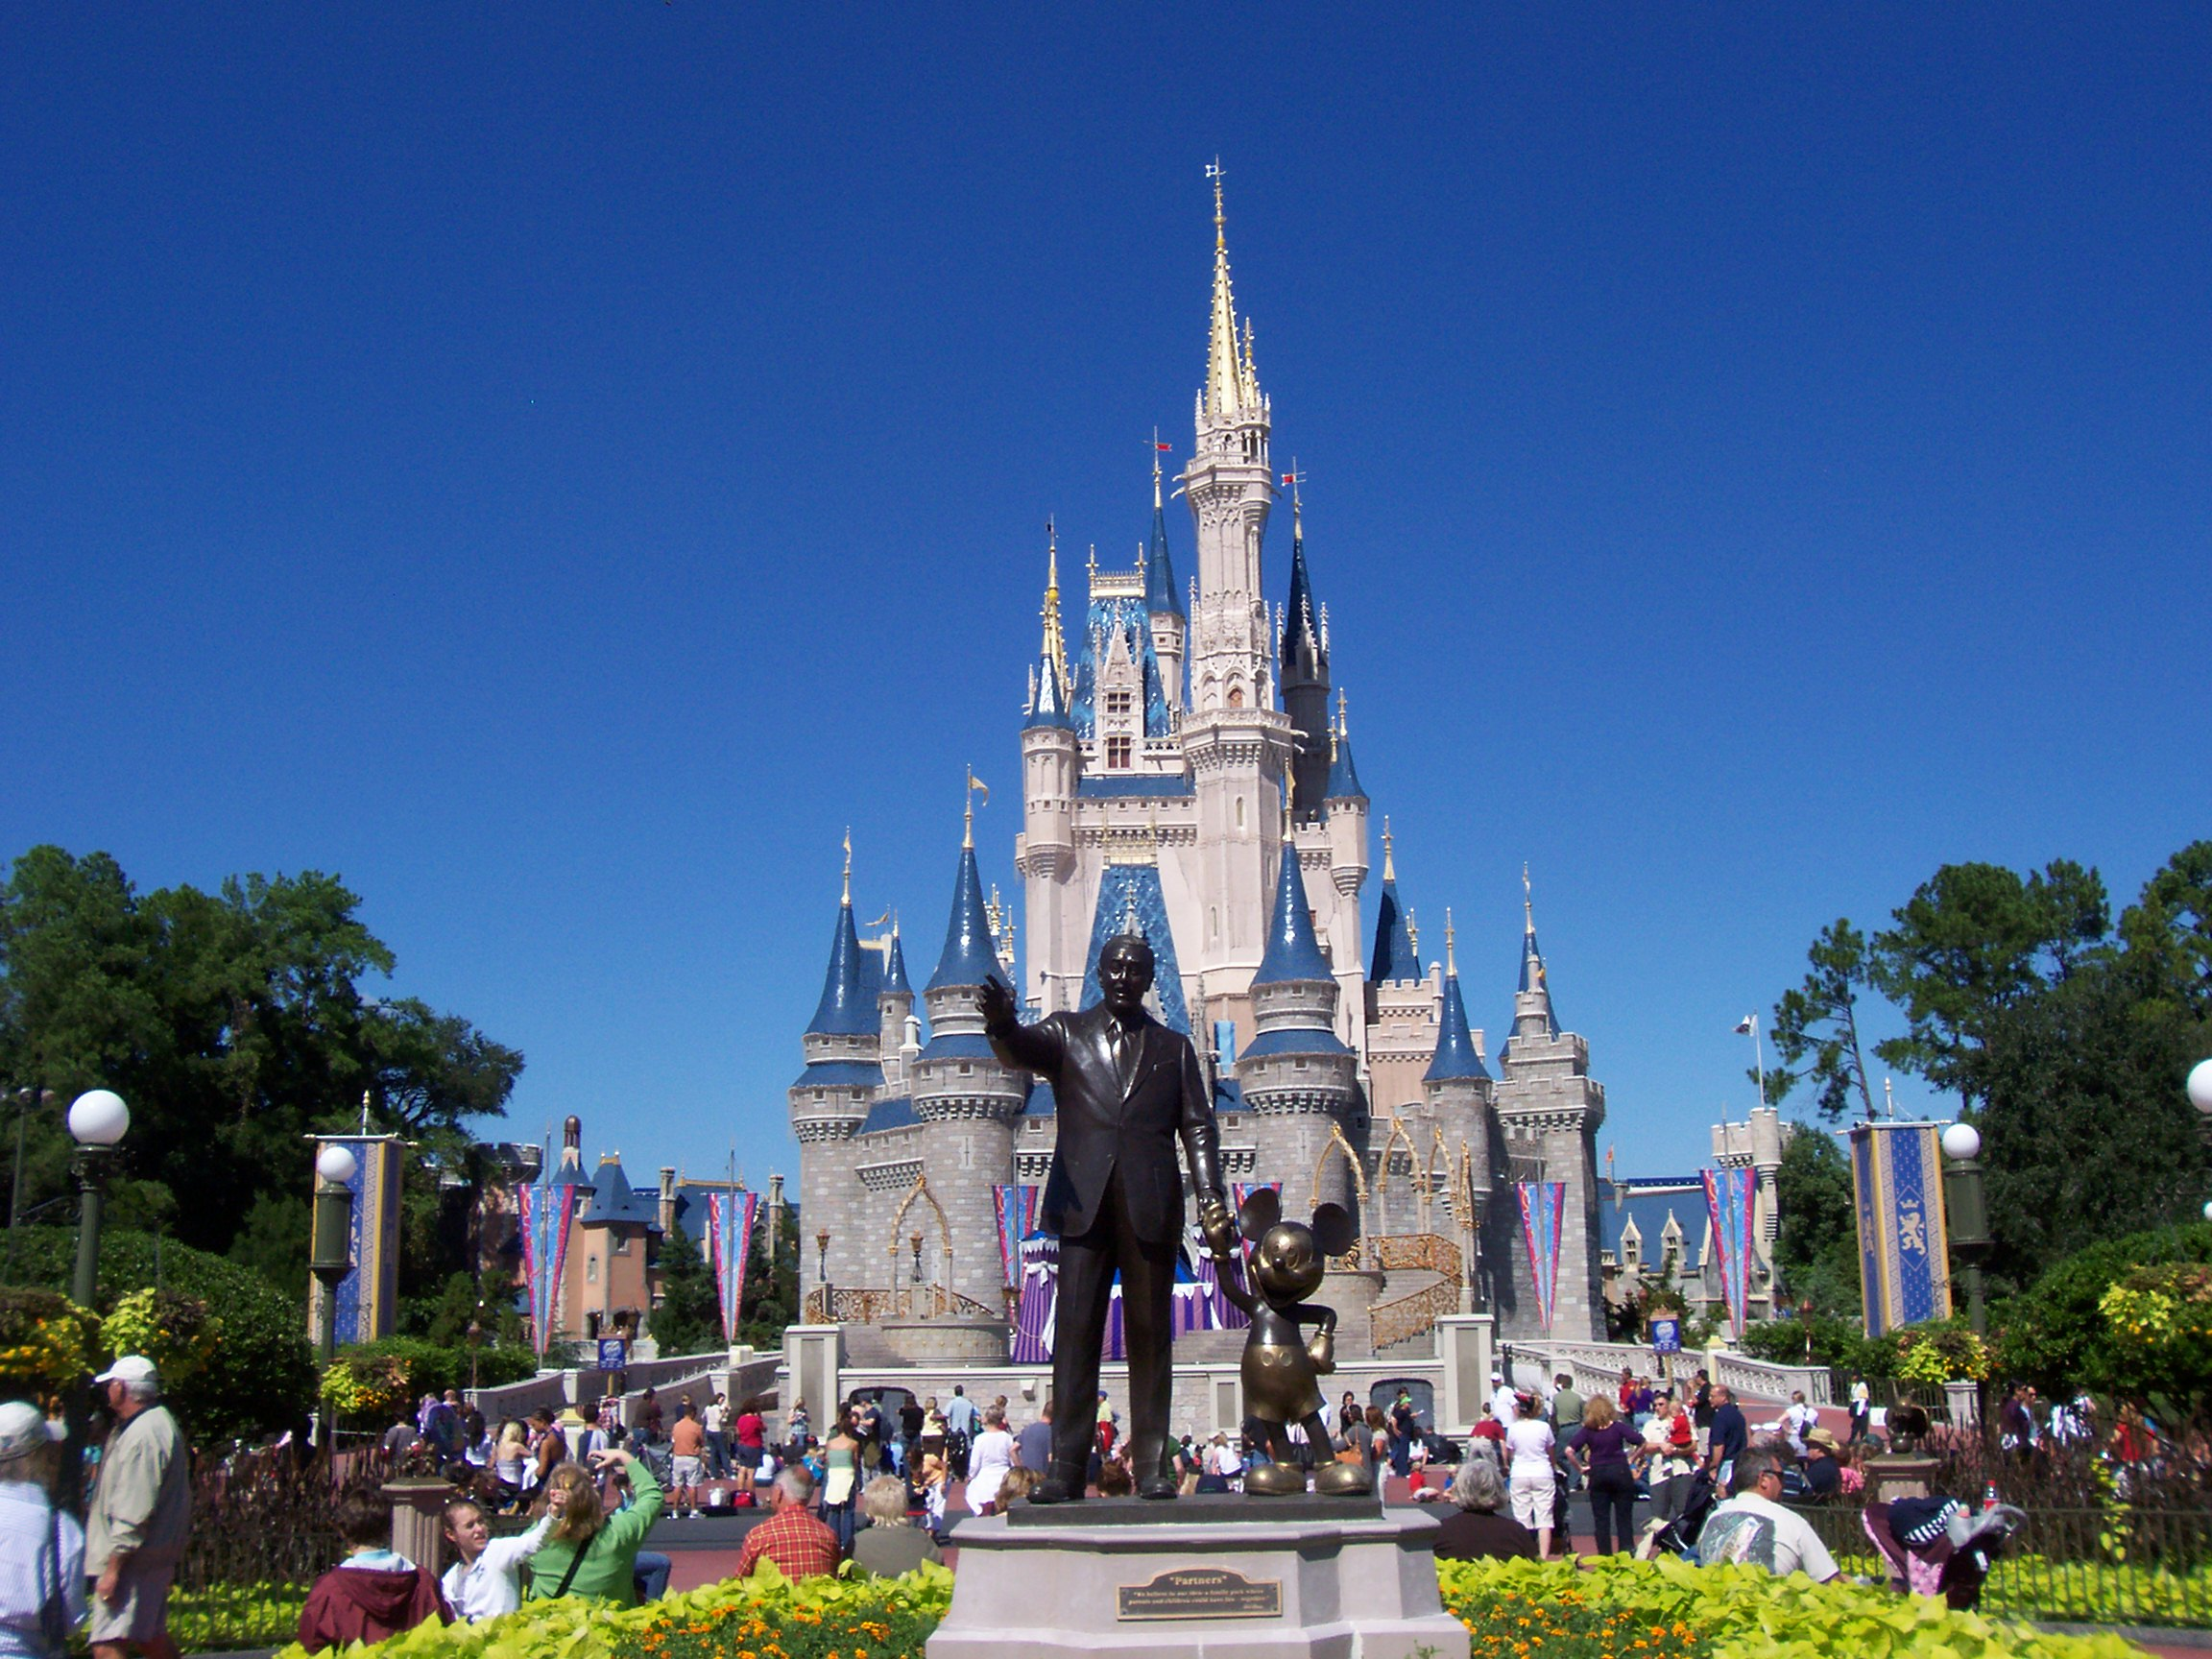 Disney's Magic Kingdom in Florida